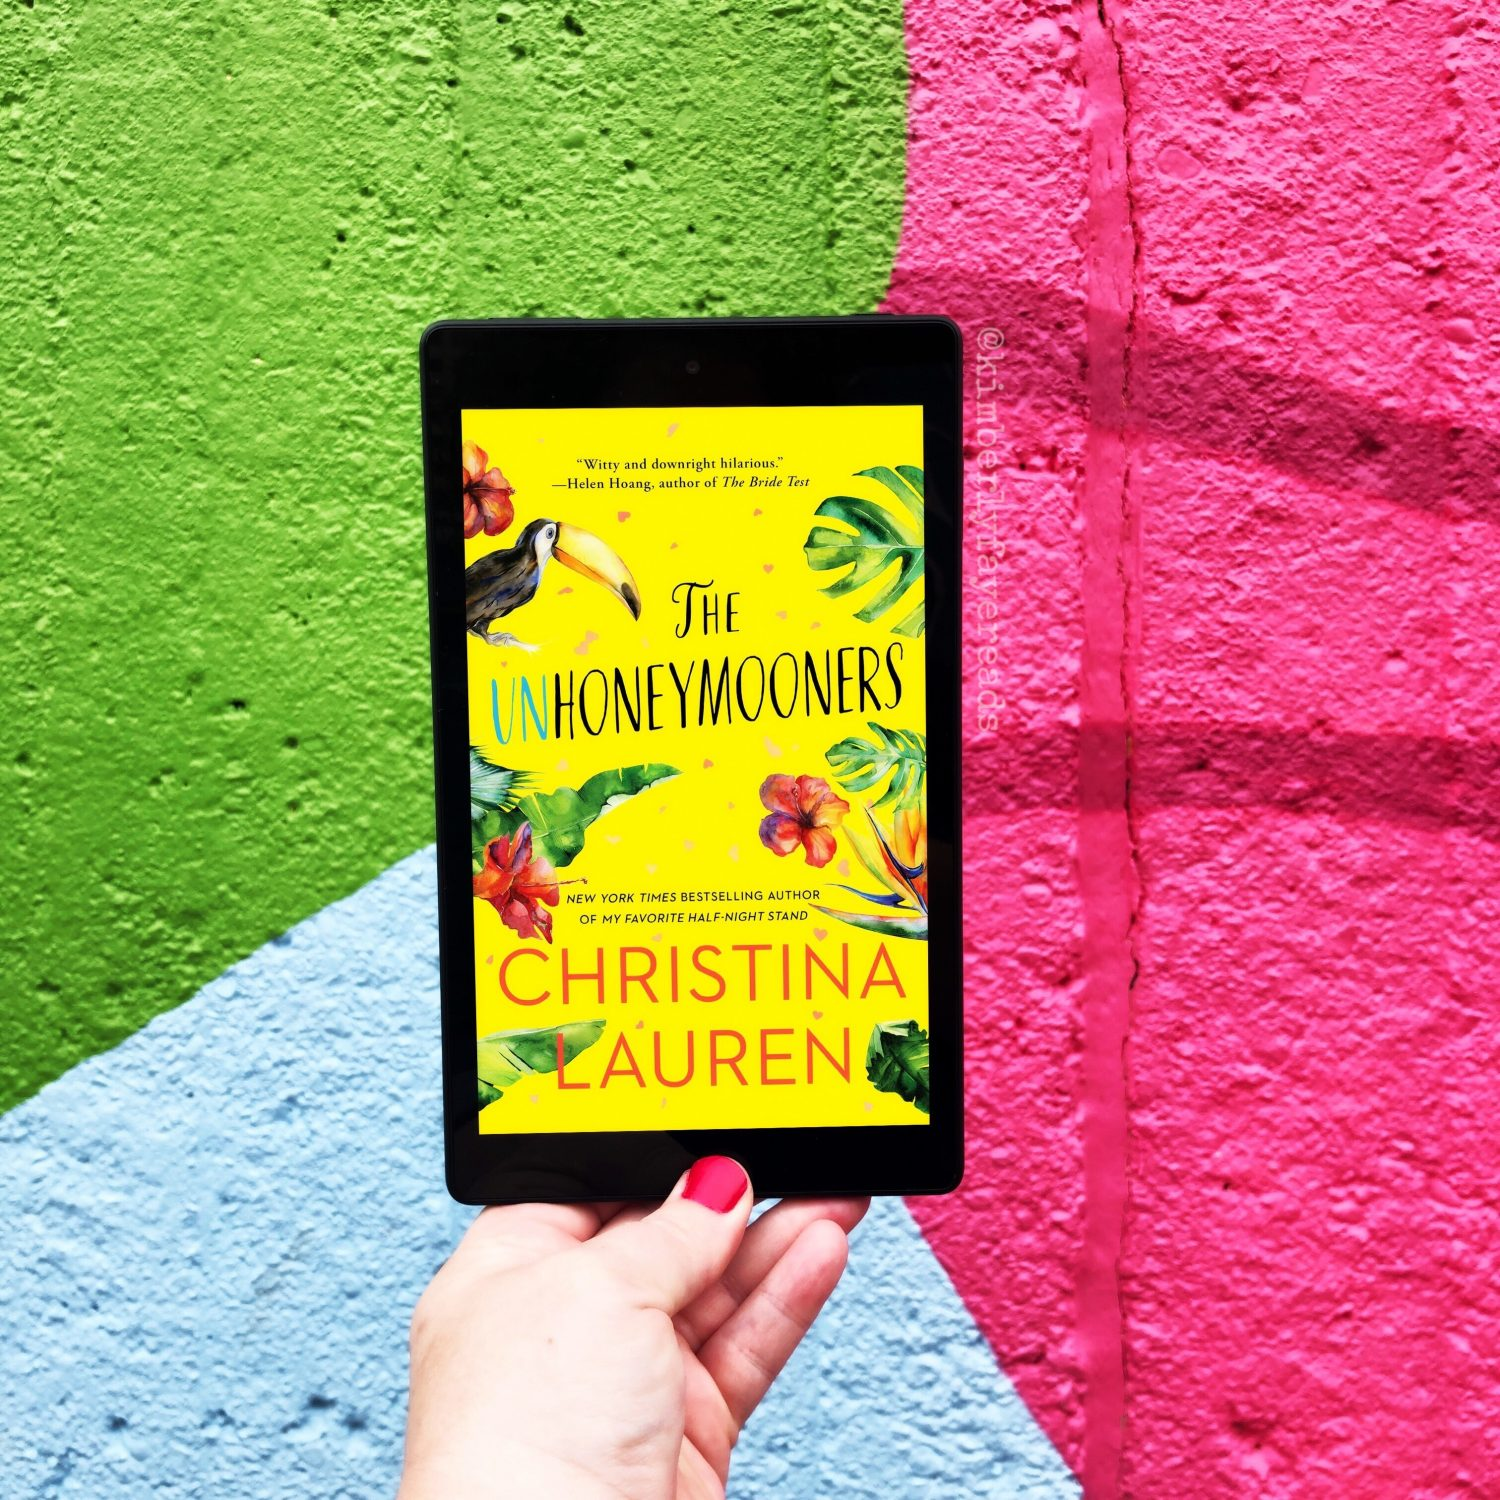 In Review: The Unhoneymooners by Christina Lauren